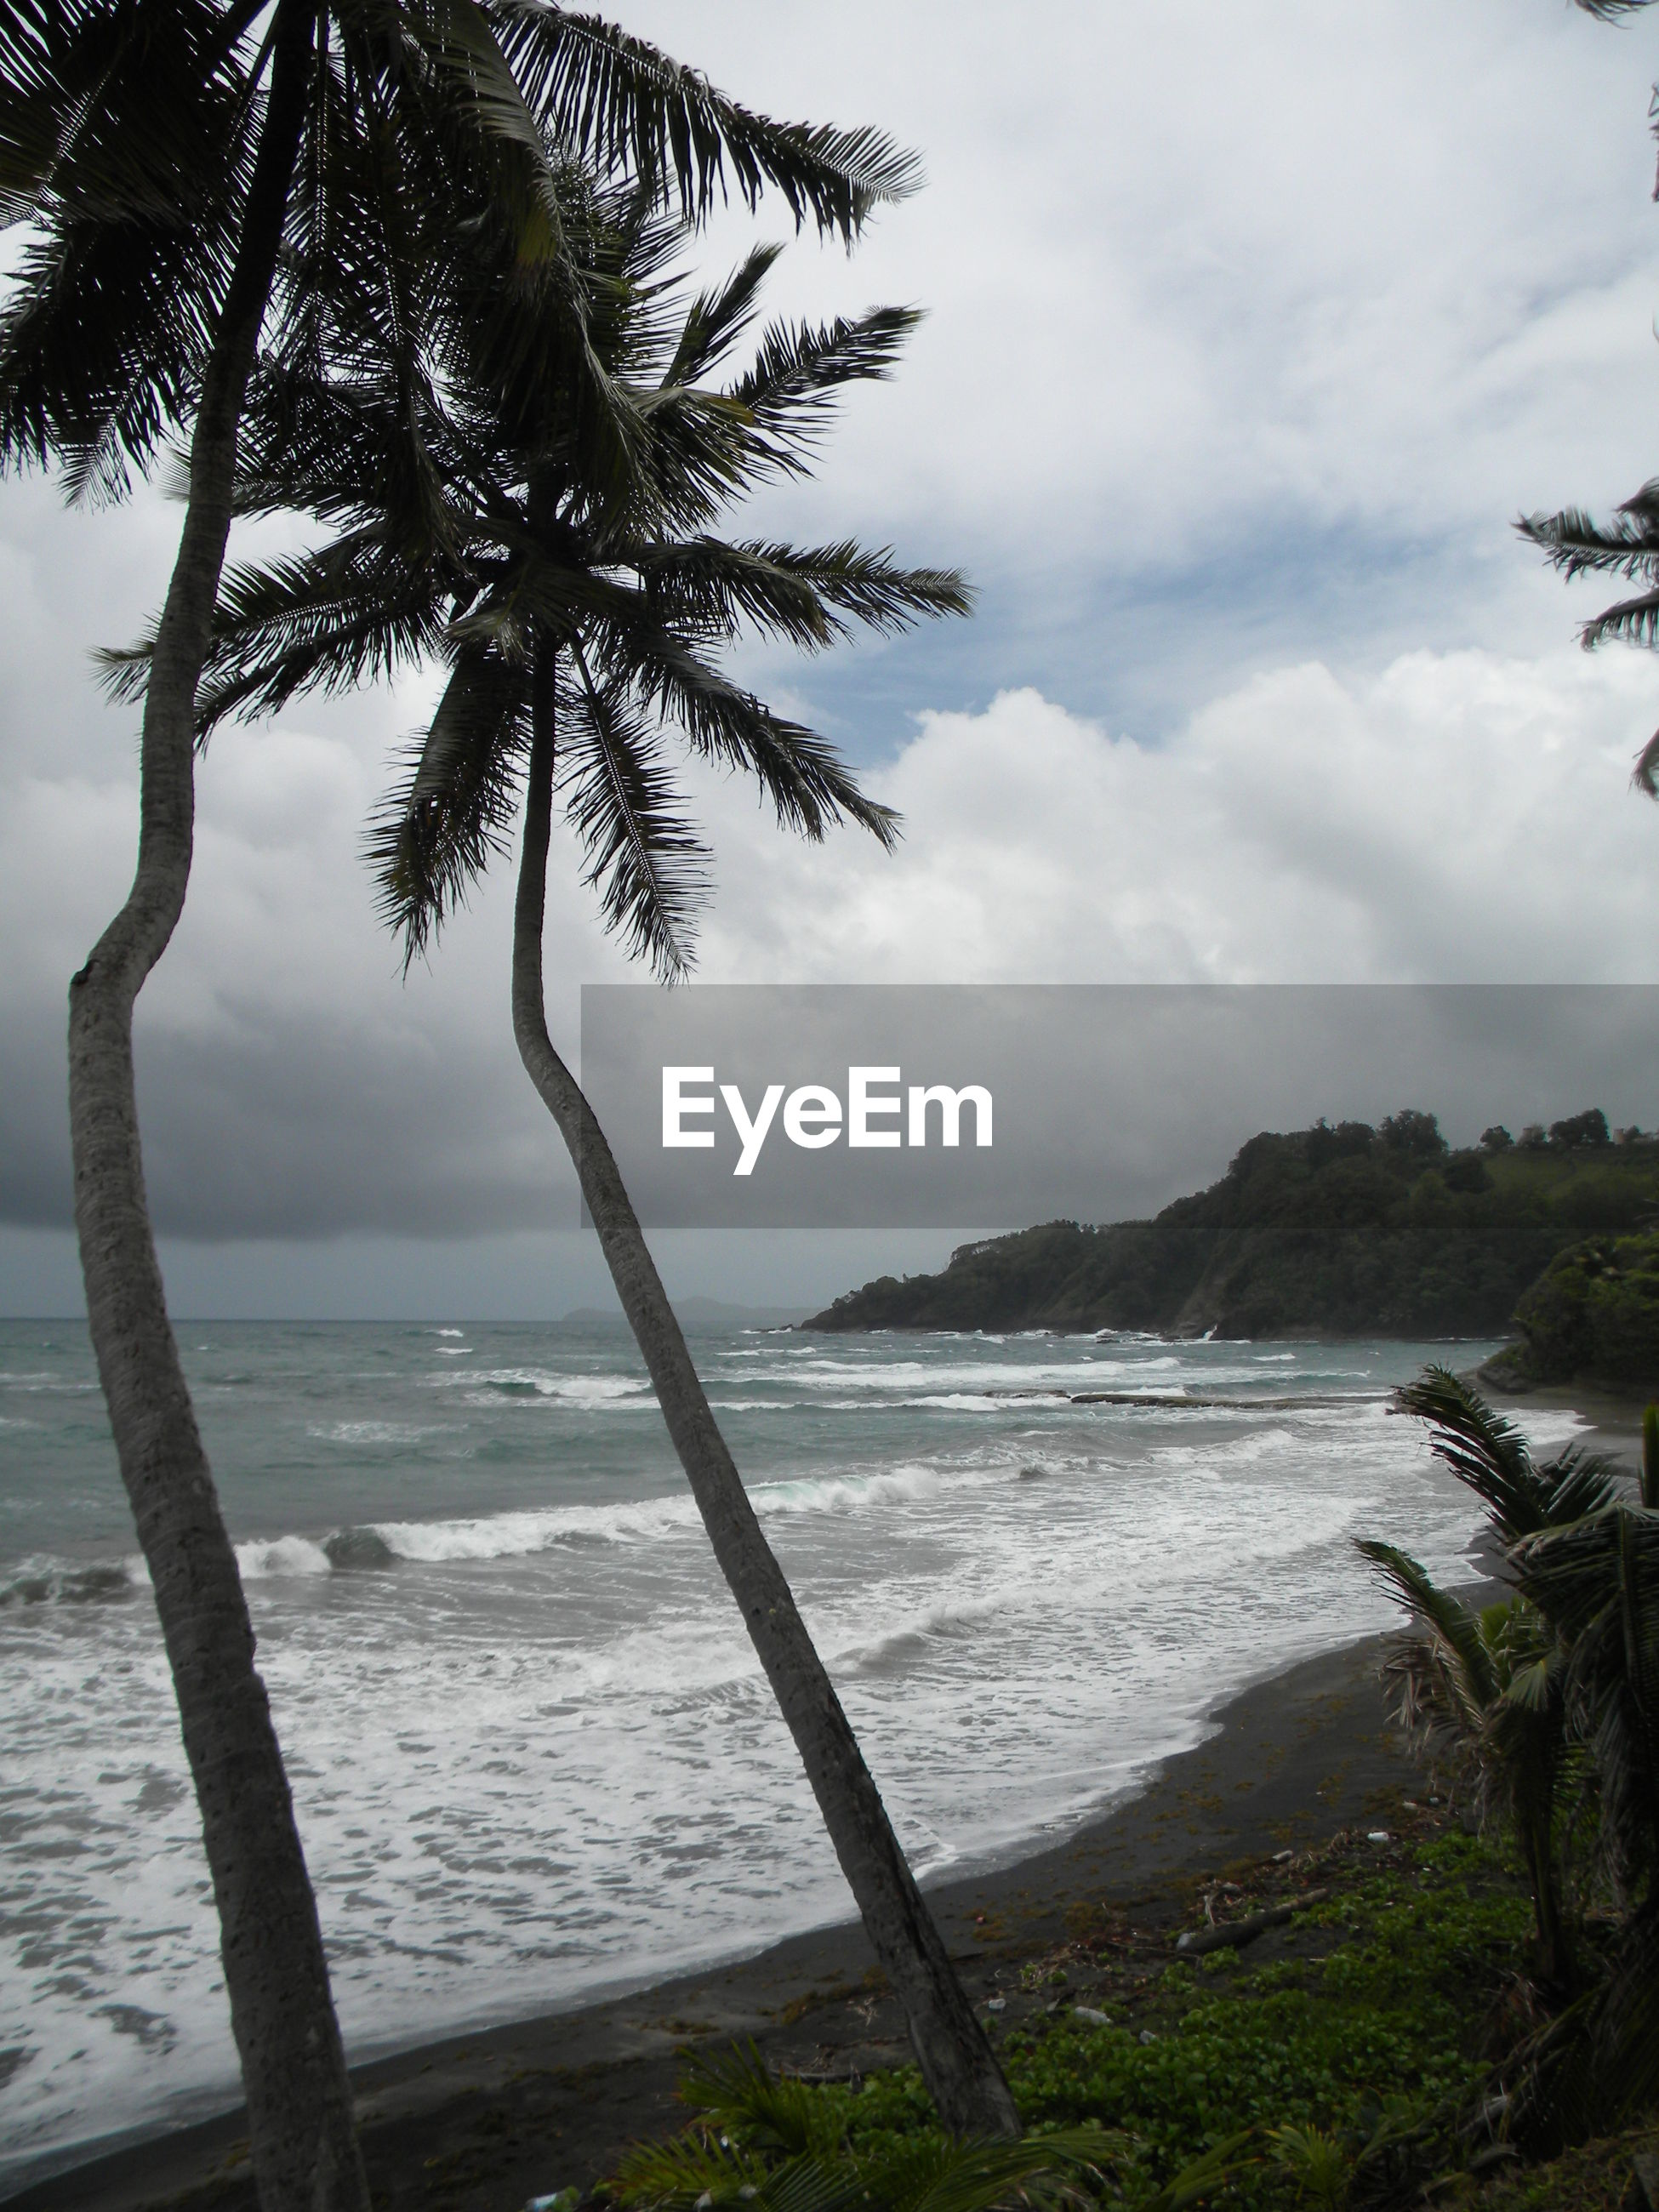 SCENIC VIEW OF SEA WITH TREES IN BACKGROUND